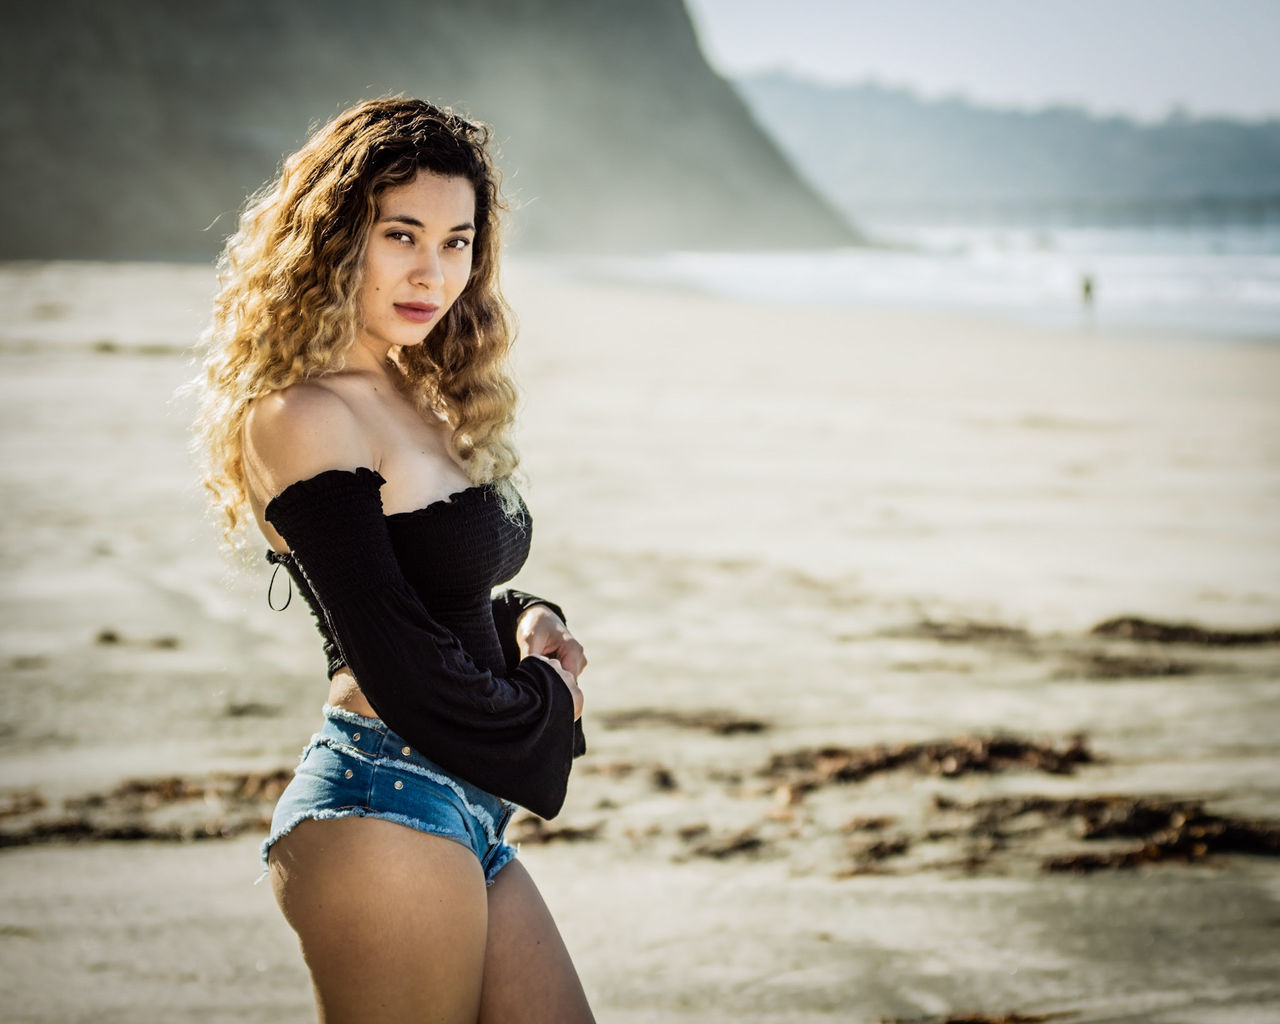 young adult, real people, young women, lifestyles, beautiful woman, focus on foreground, leisure activity, one person, sea, beach, standing, looking at camera, beauty, long hair, outdoors, nature, portrait, water, beauty in nature, day, sky